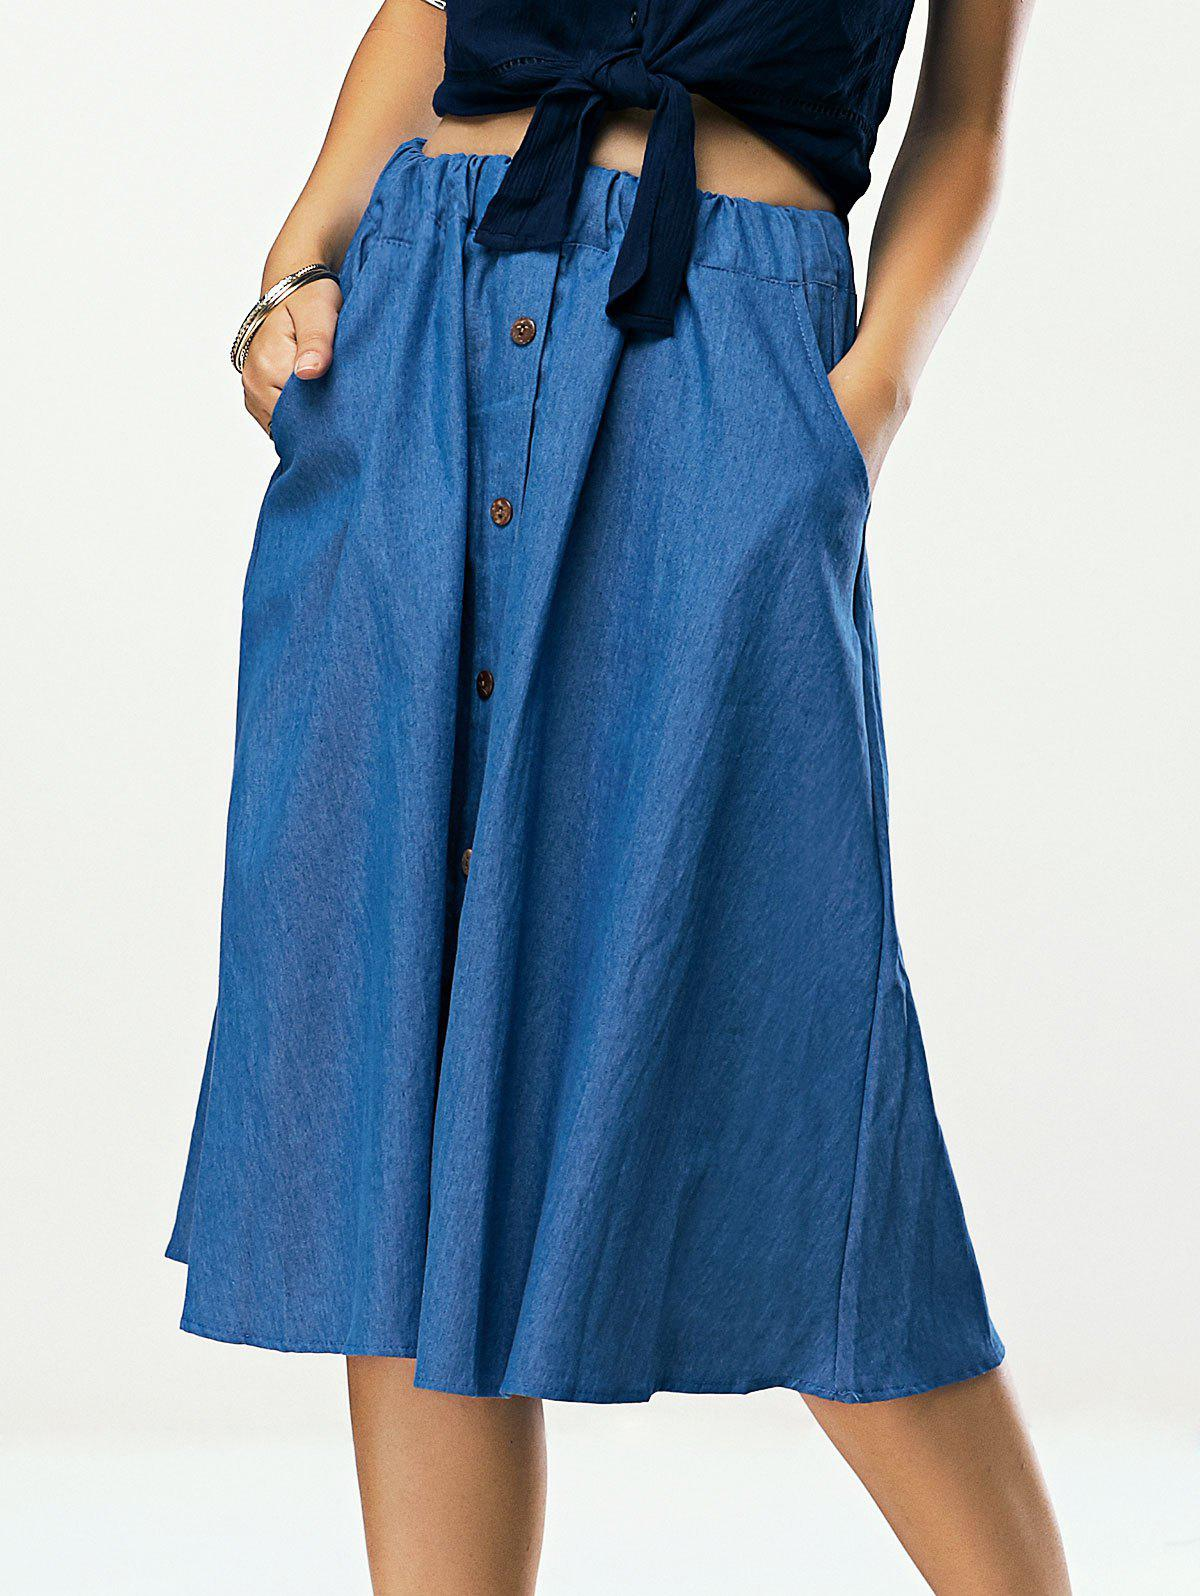 Pleated Pocket Design Denim Skirt - DENIM BLUE ONE SIZE(FIT SIZE XS TO M)